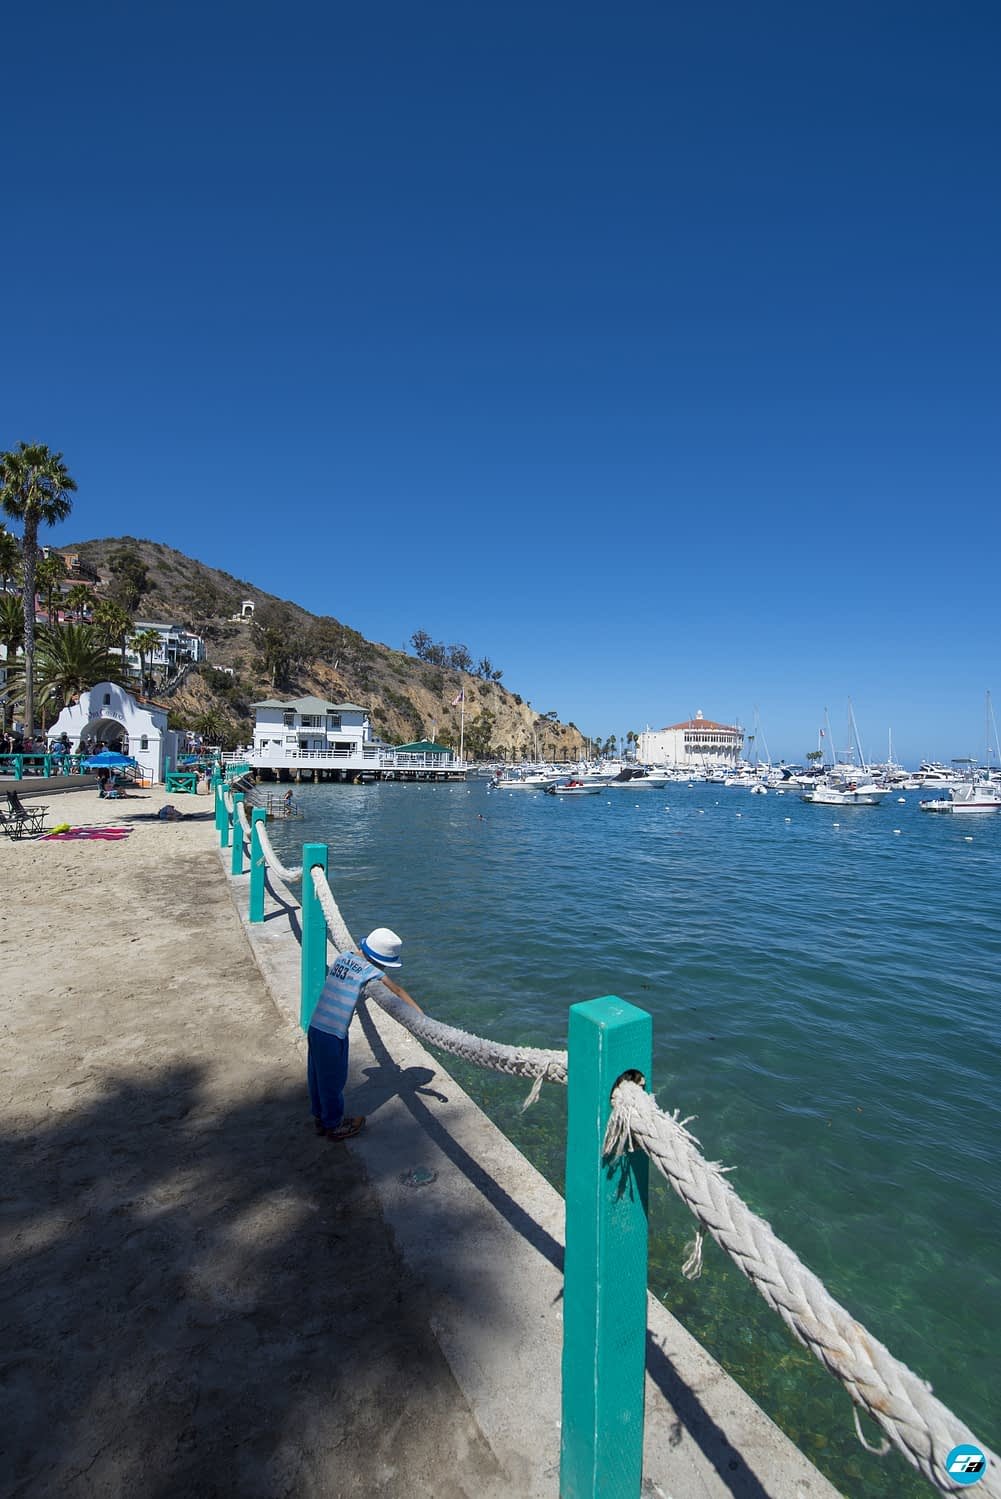 Catalina Island, Chanel Islands National Park, California, Casino View. Pier View. Small Beach. Child Playing.